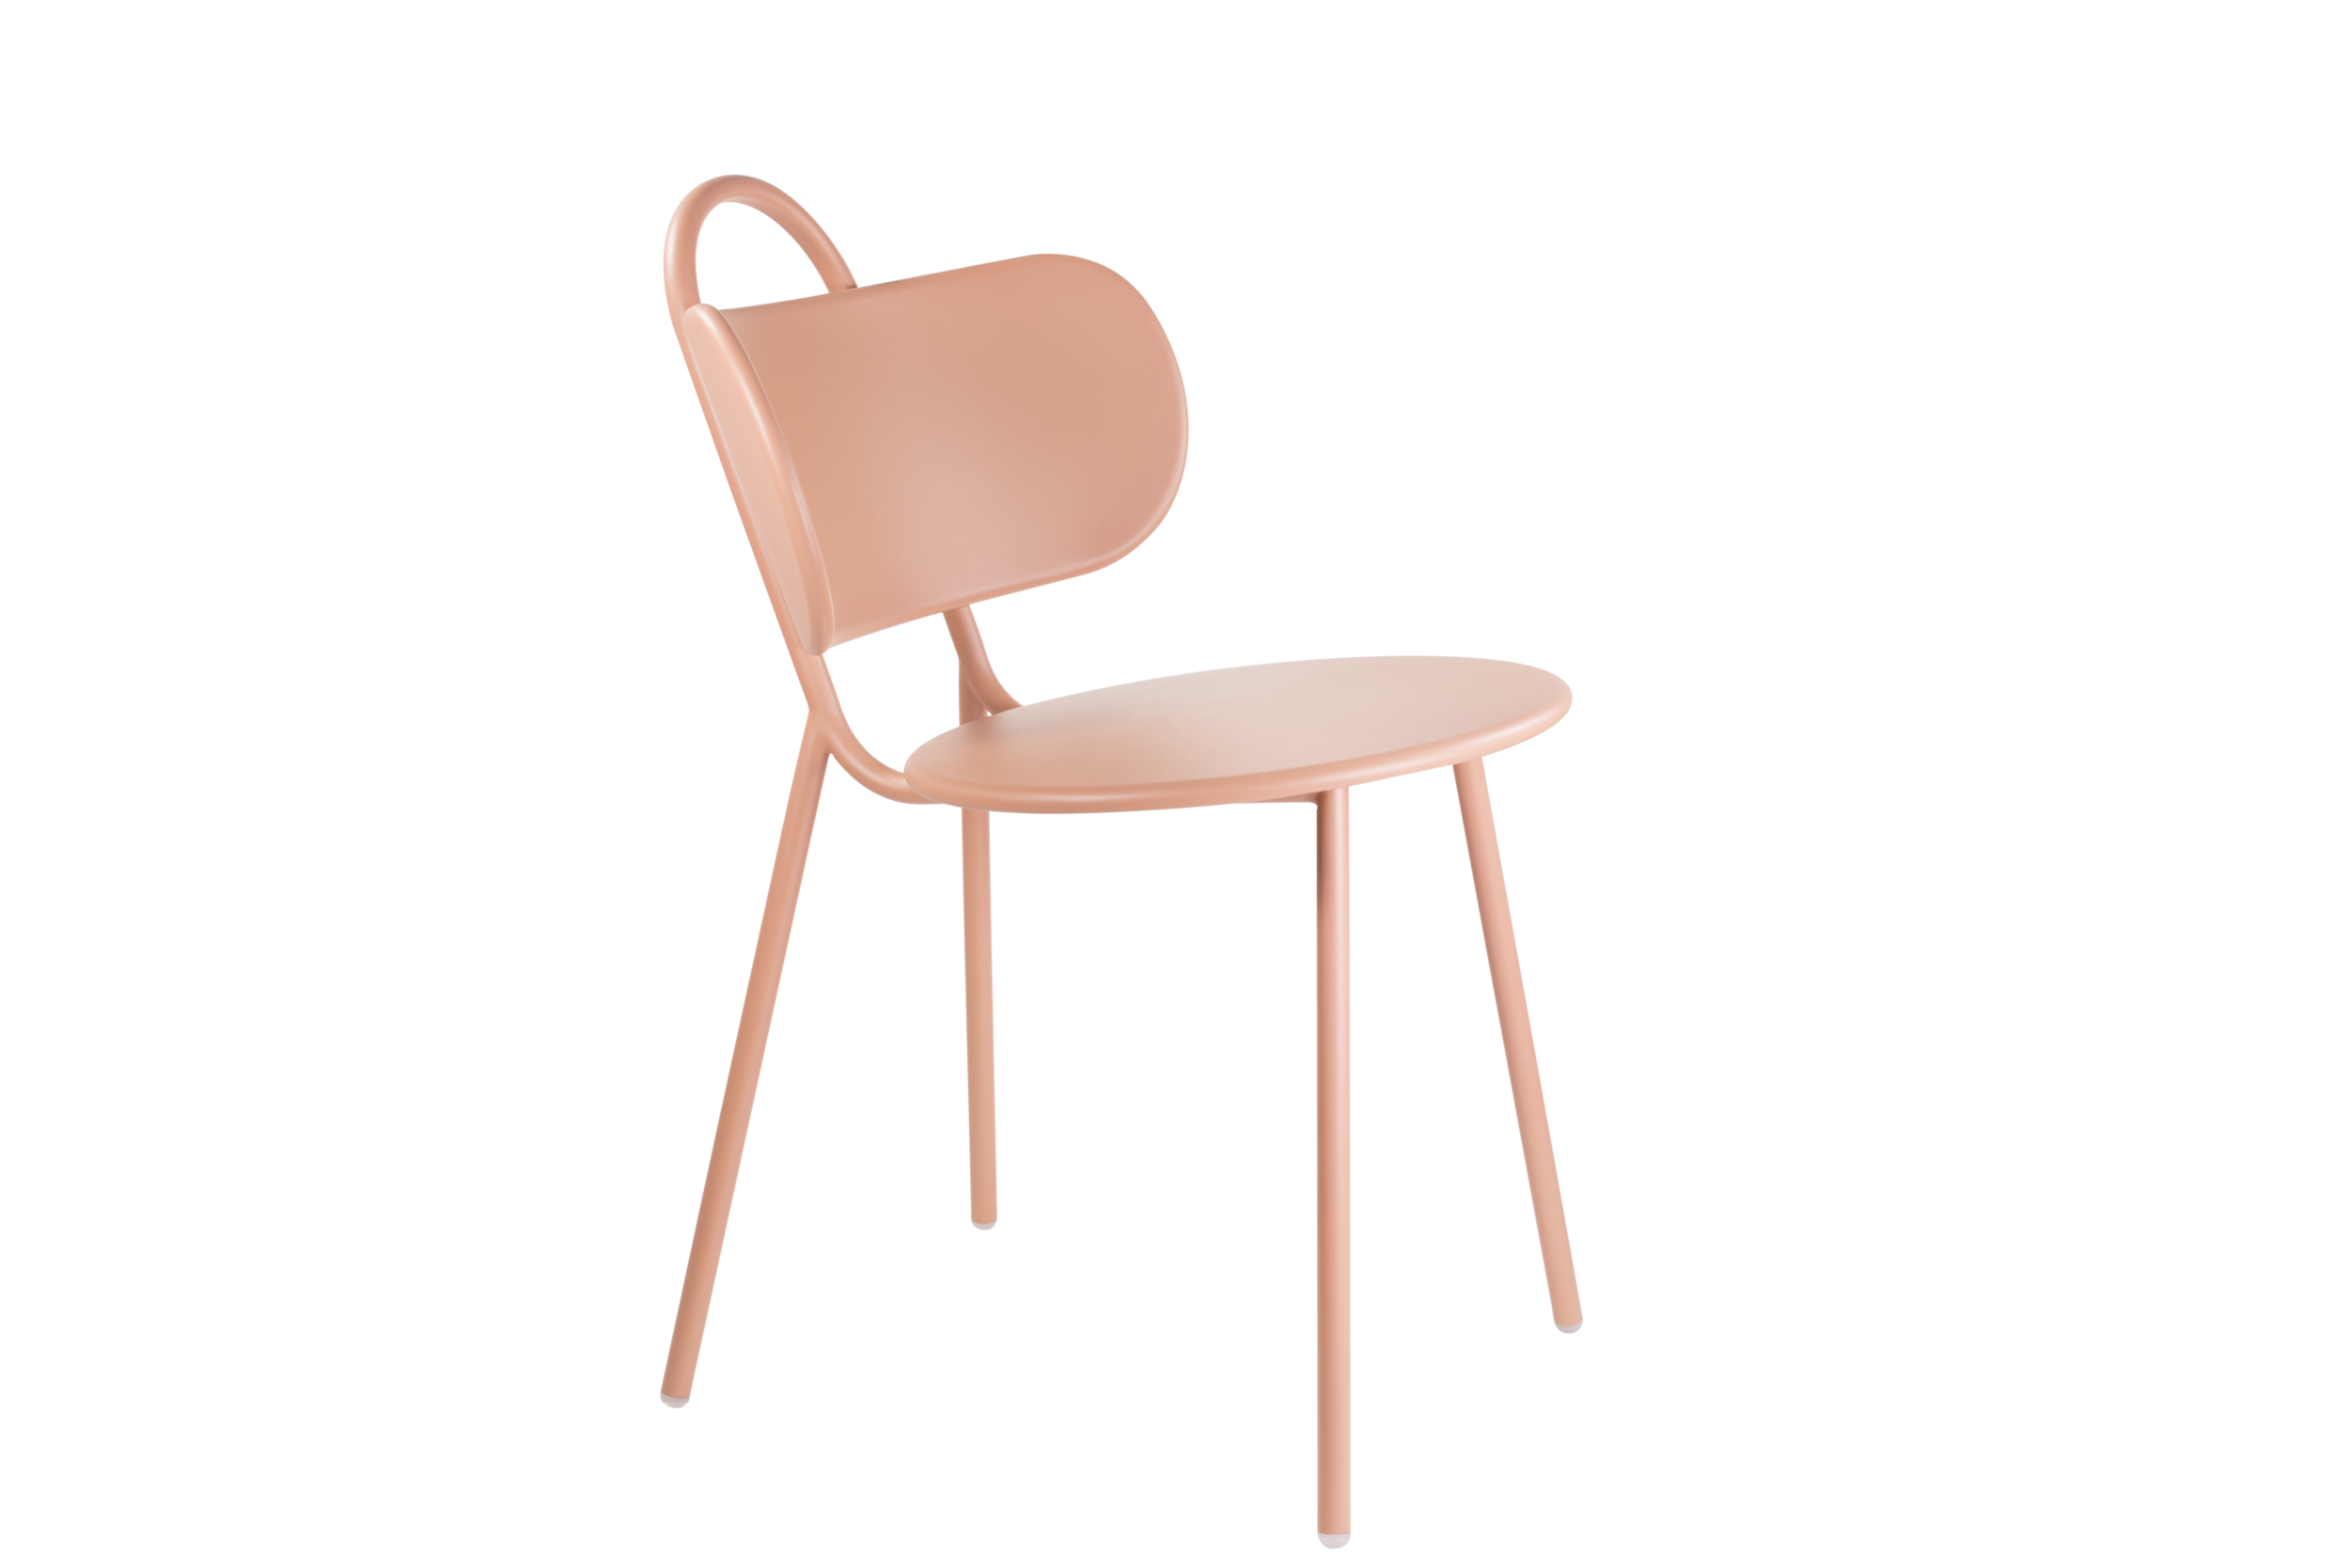 Chaise_rose_02.png